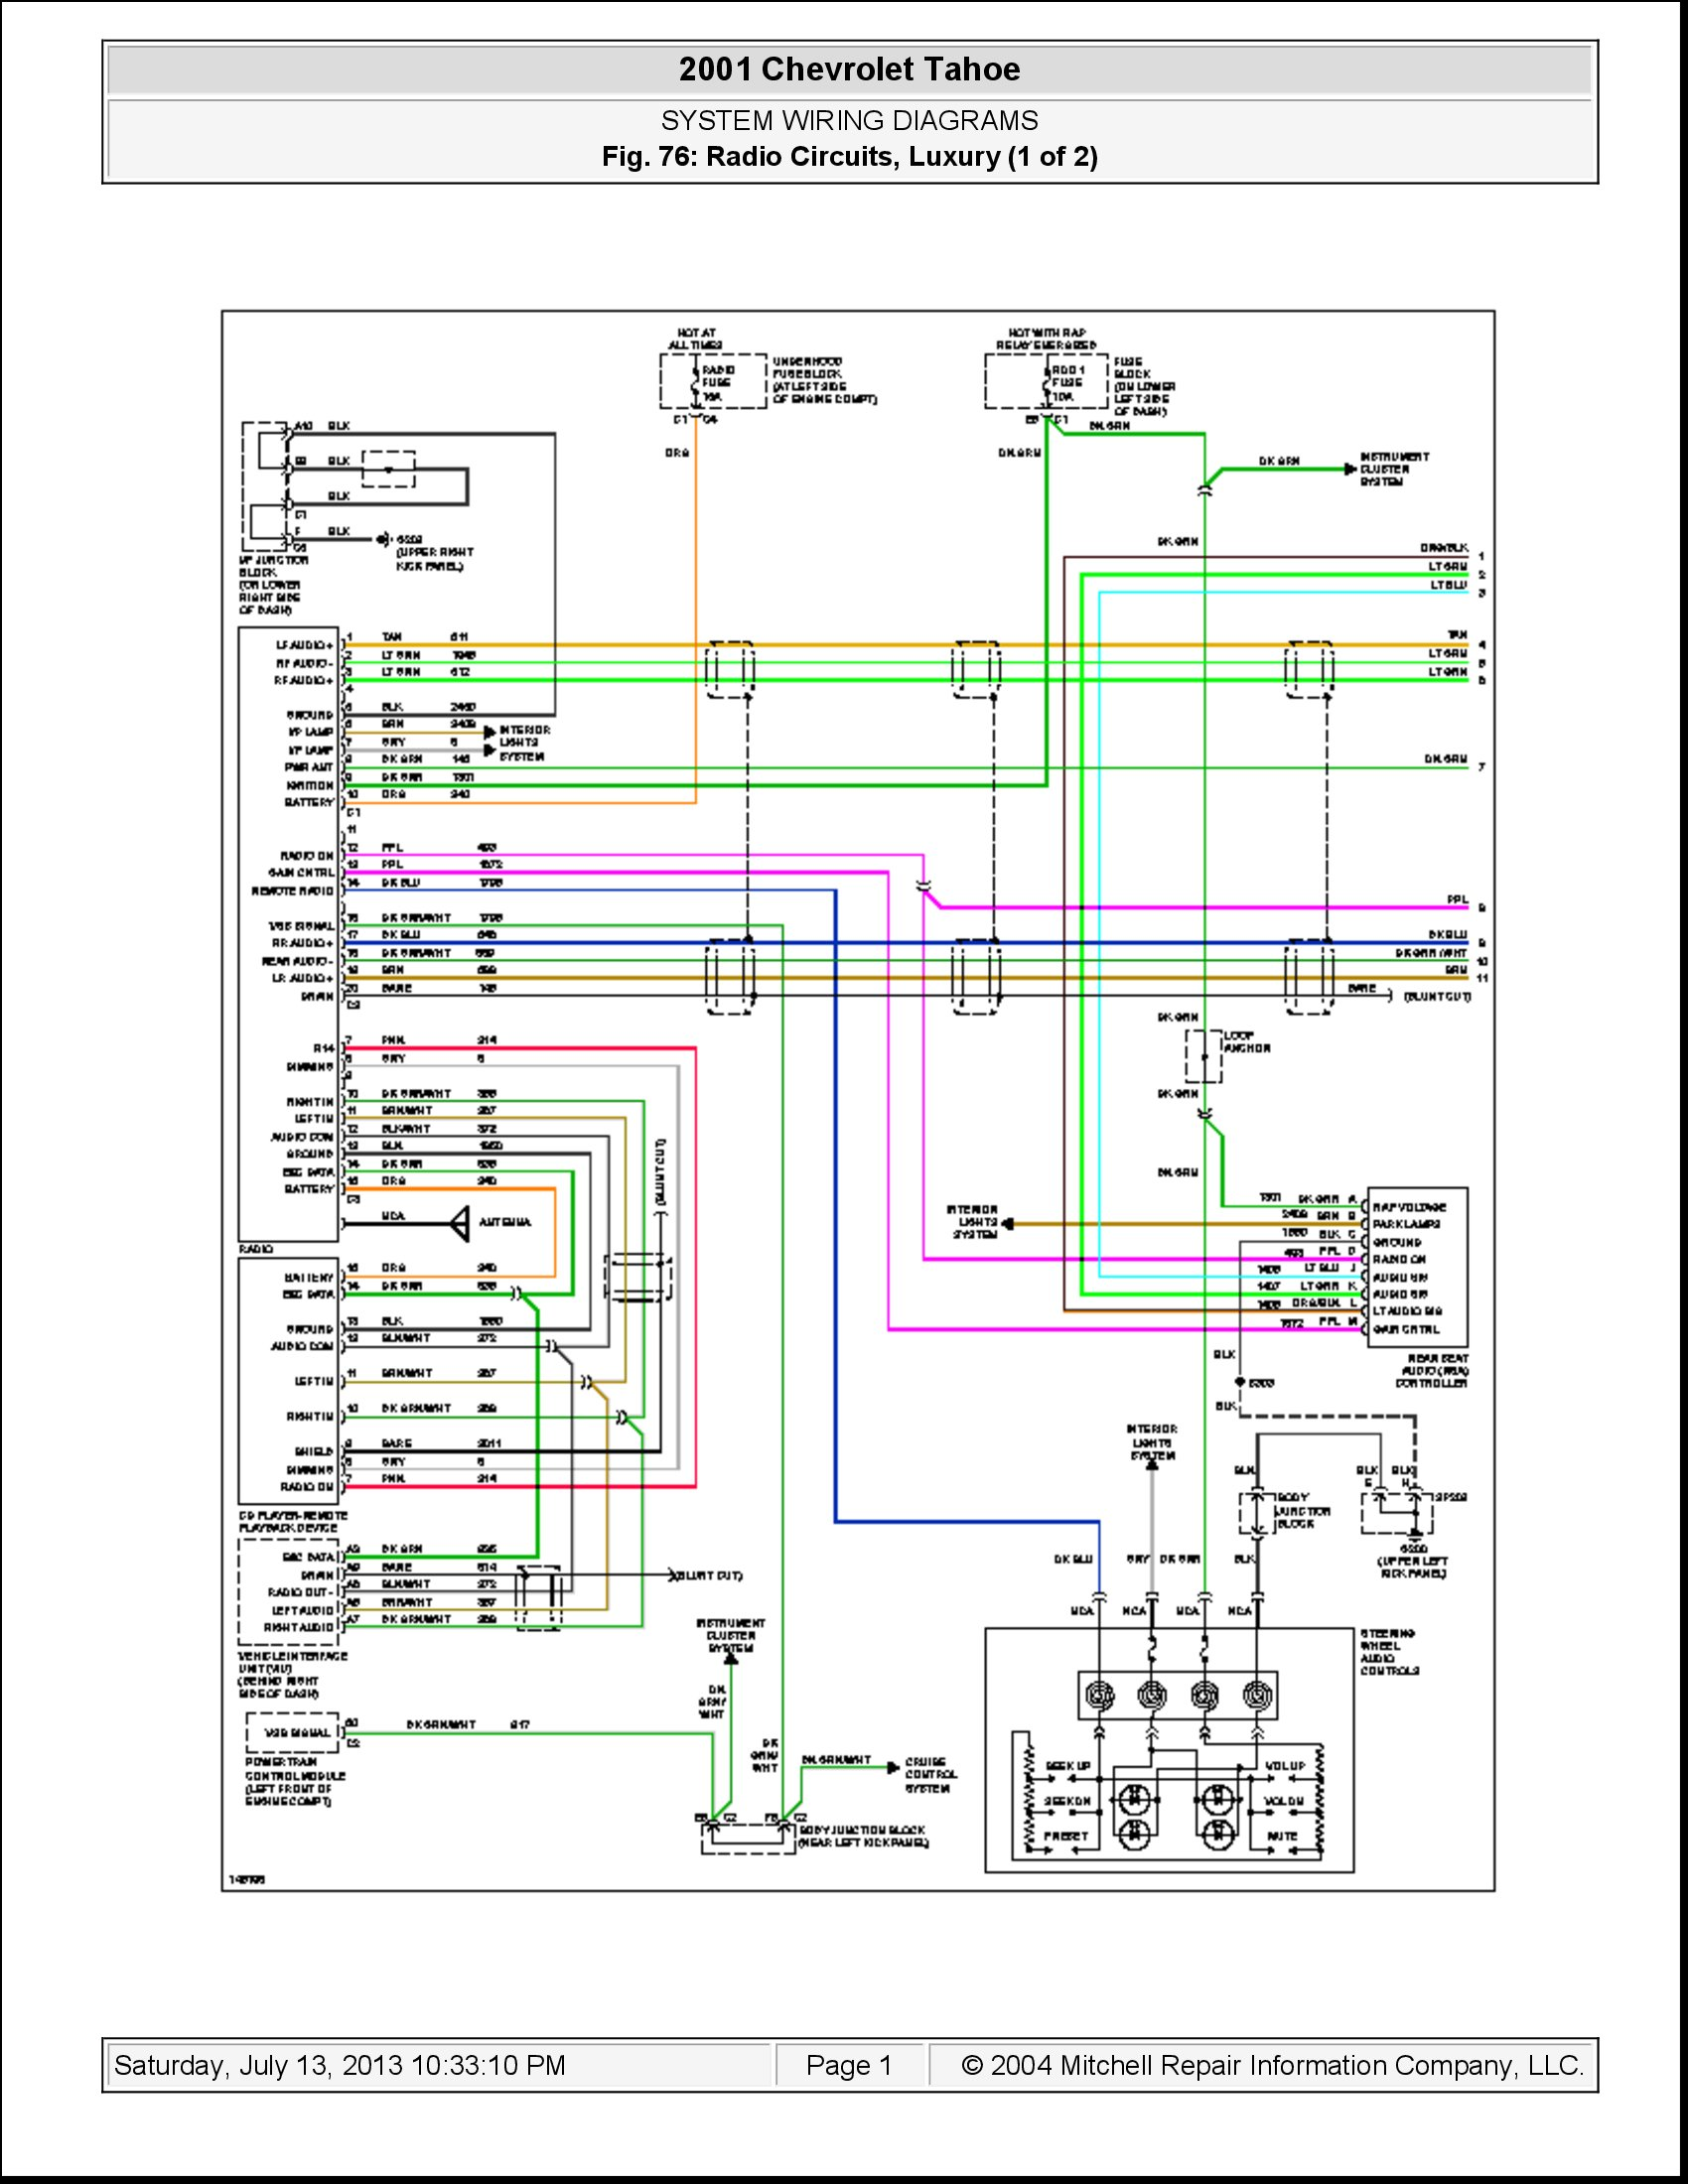 2013 07 14_033506_2001_tahoe_radio_wiring_luxury_1 i need a diagram of the stereo wireing in a 2001 chevy tahoe 2007 chevy tahoe radio wiring diagram at panicattacktreatment.co